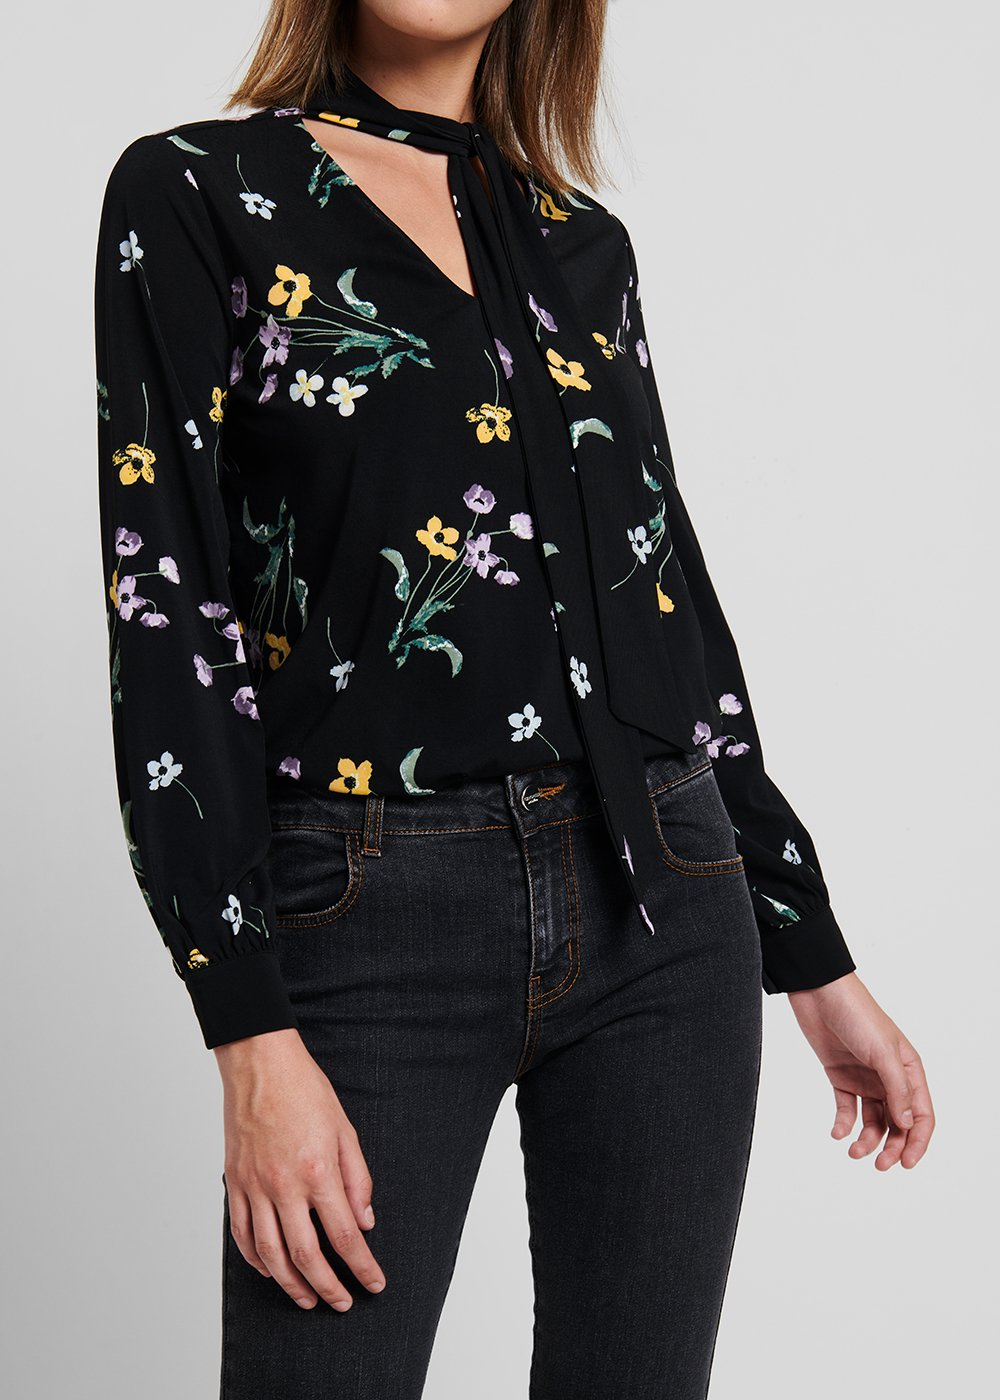 T-shirt in jersey with floral print with V-neck and scarf - Black / Pino / Fantasia - Woman